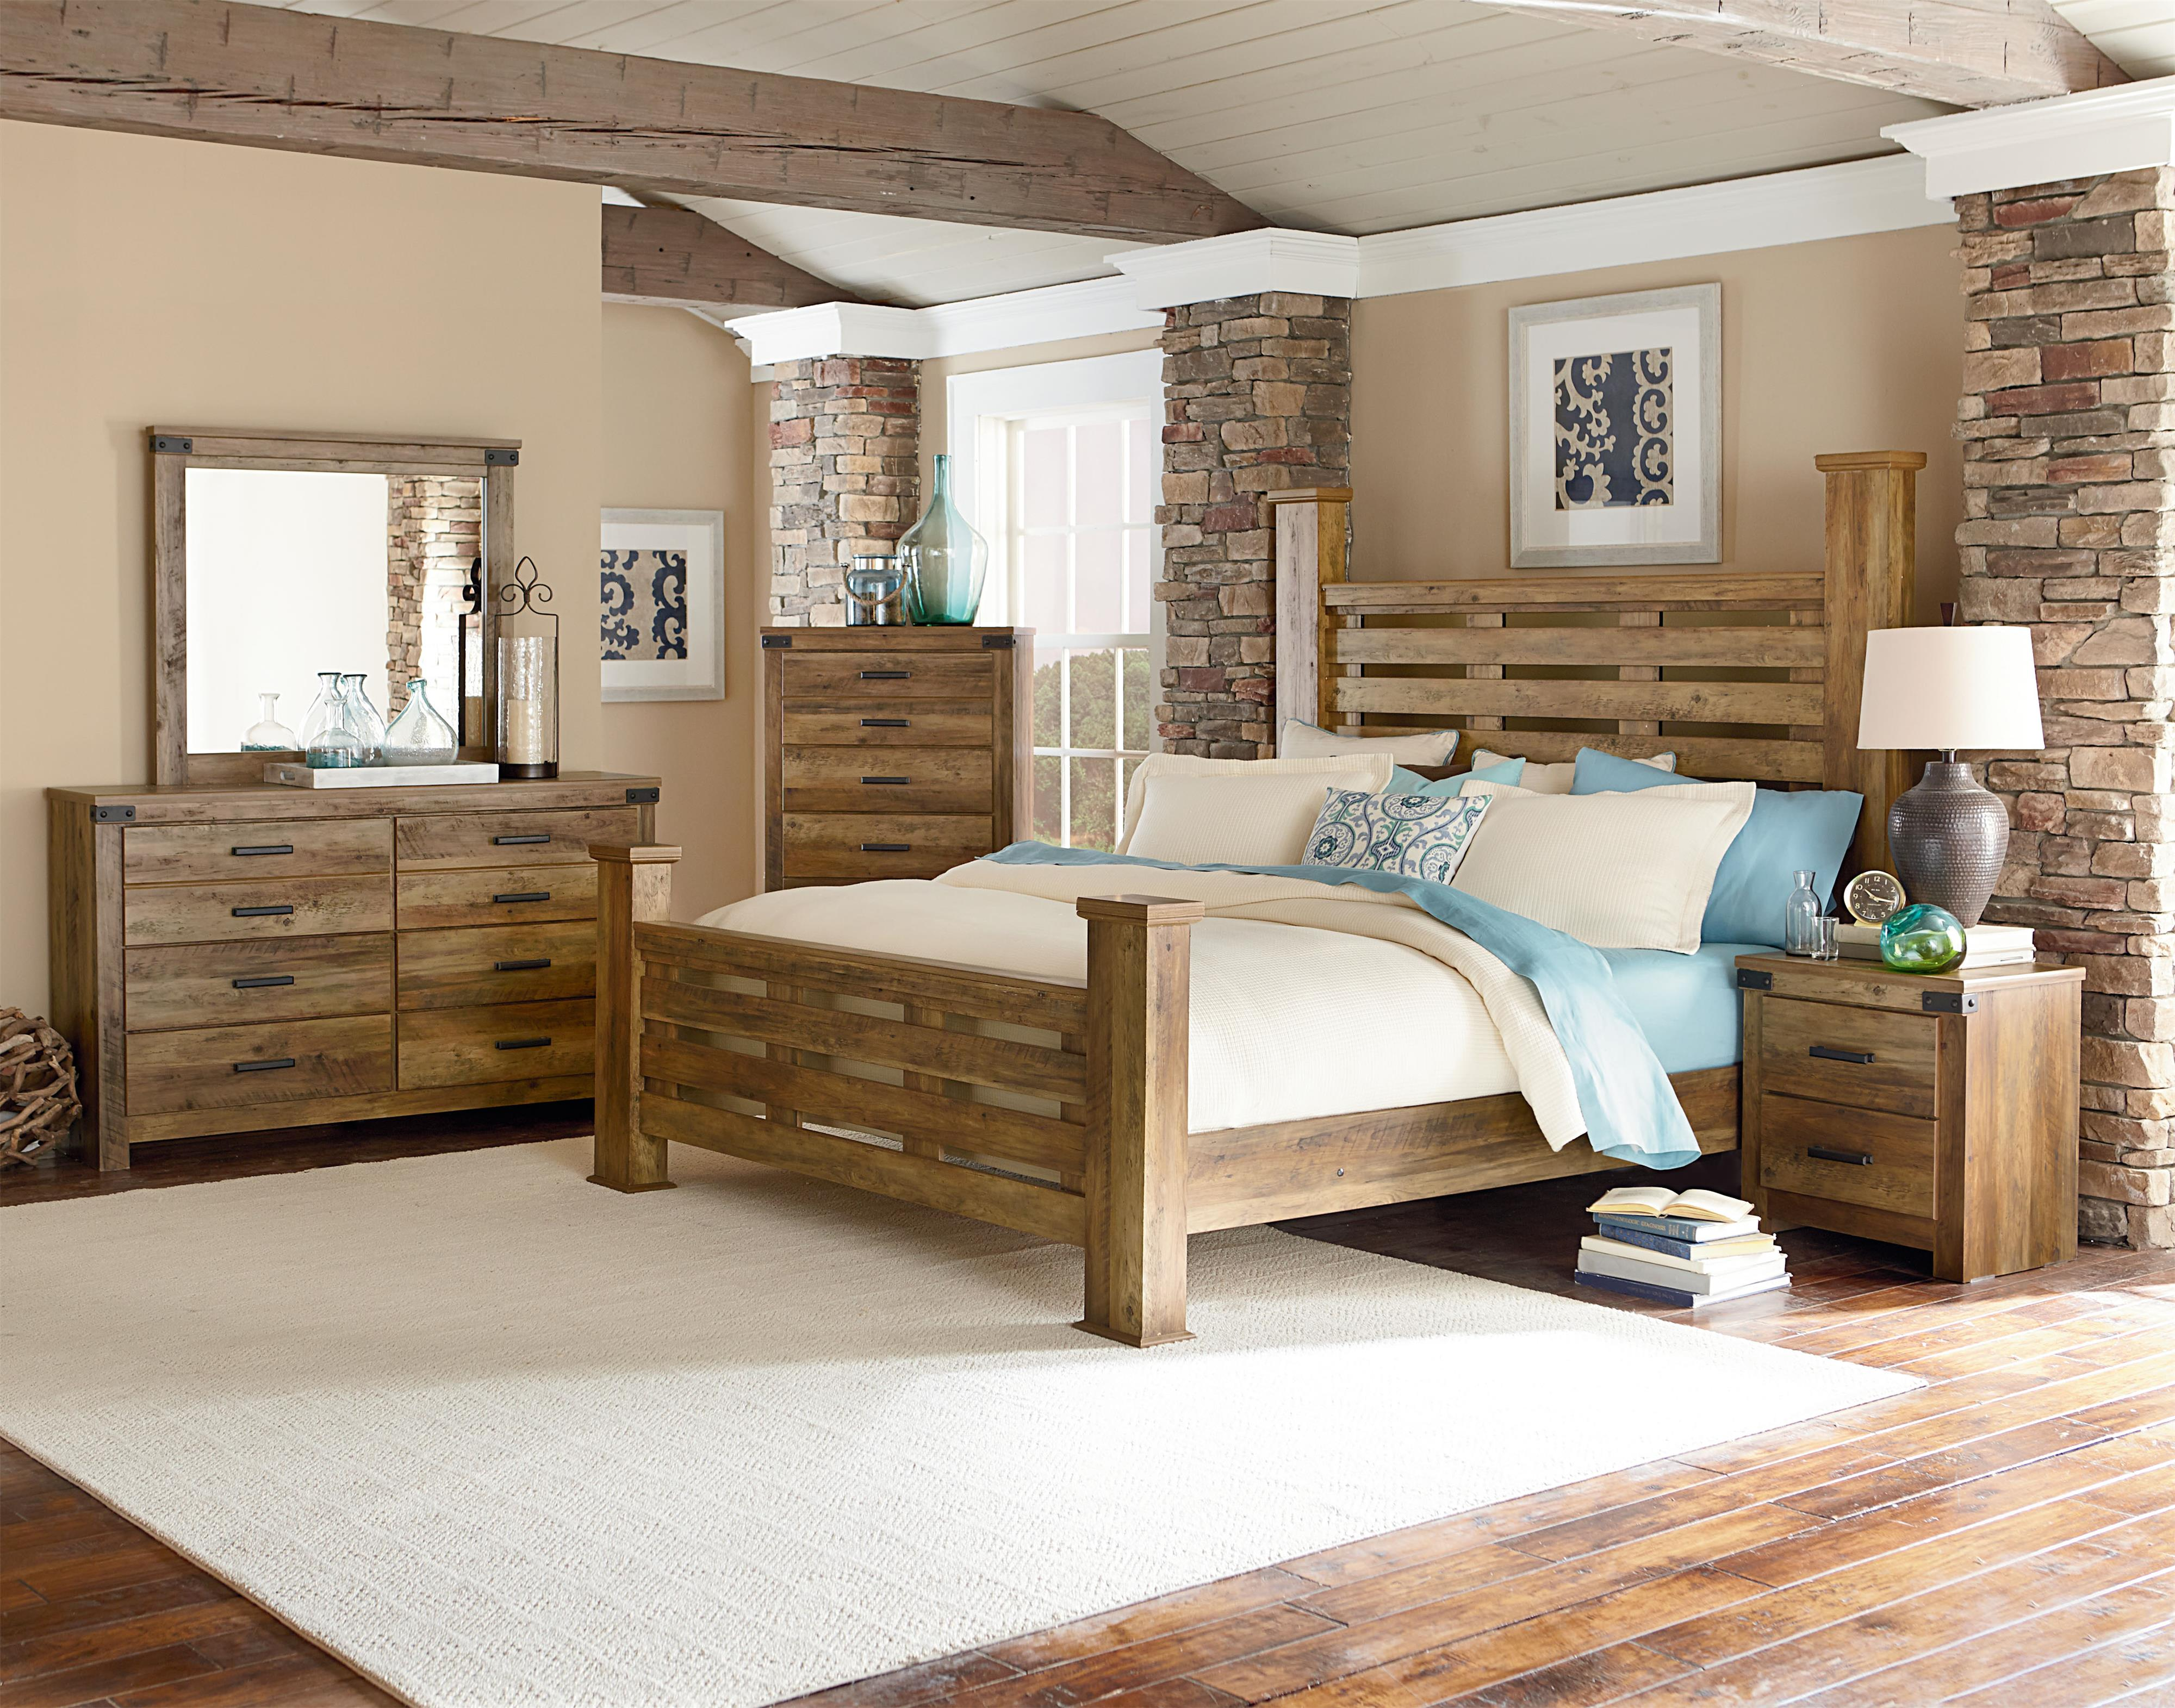 Standard Furniture Montana Queen Bedroom Group Knight Furniture Mattress Bedroom Group